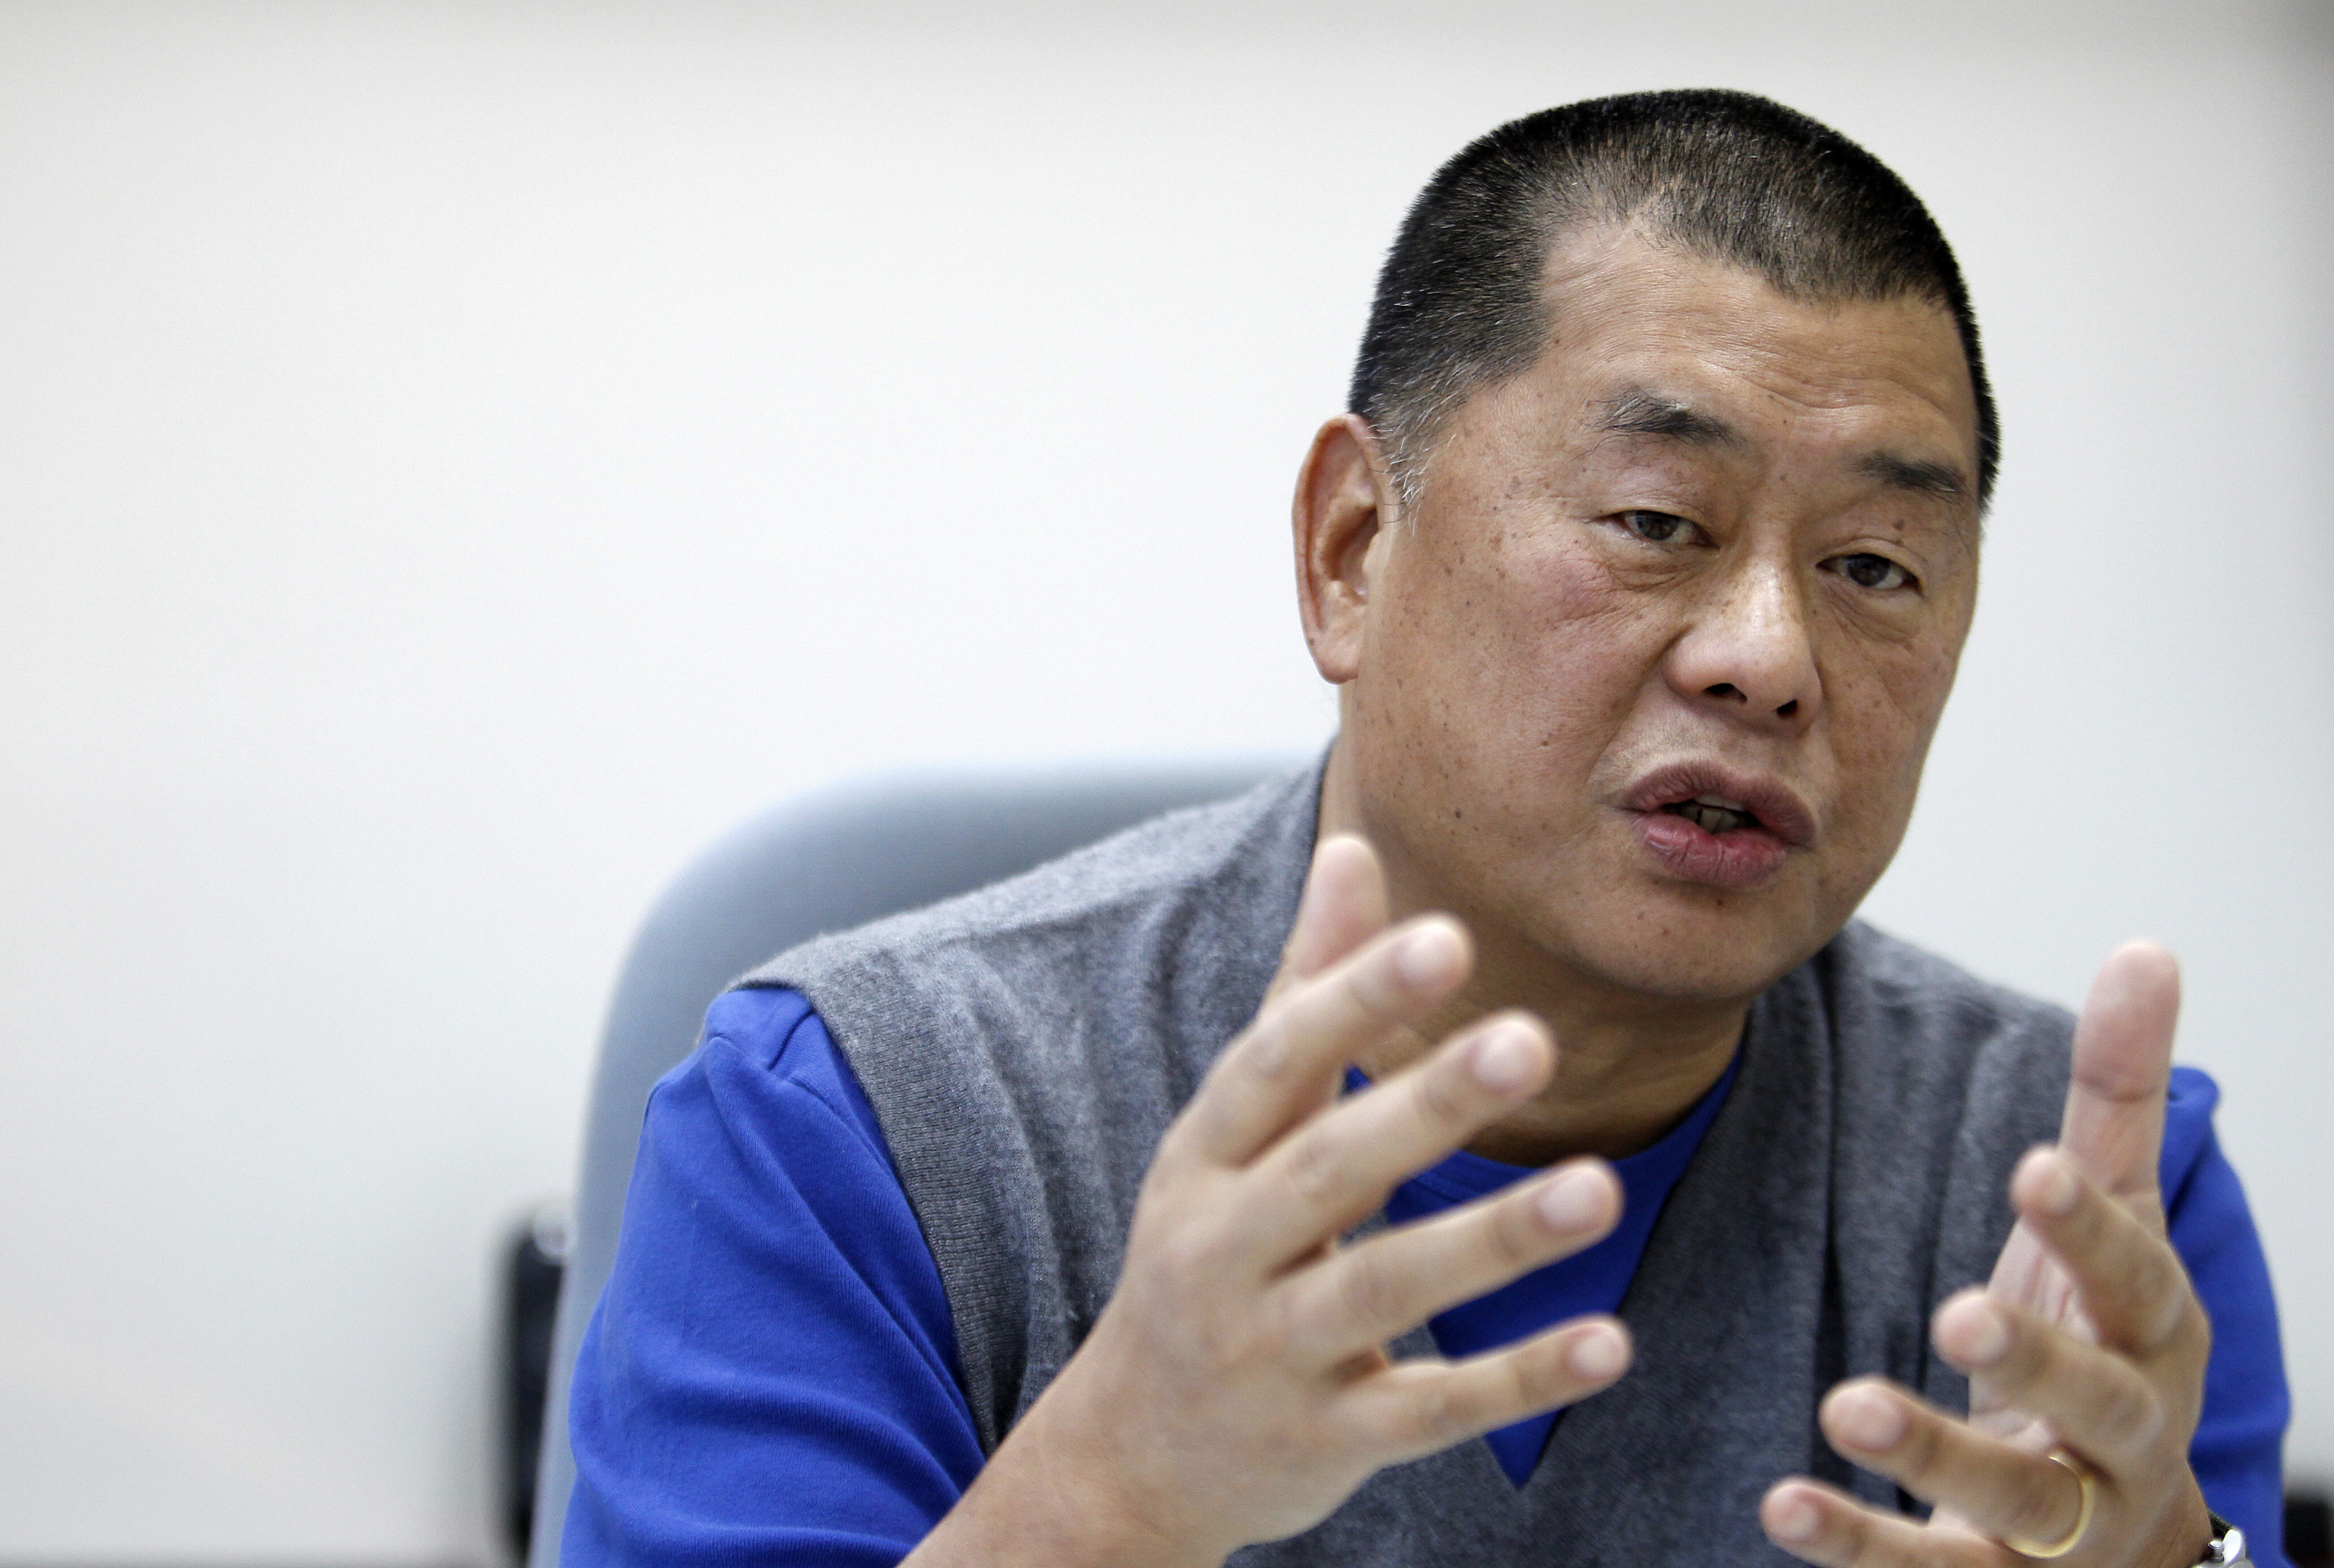 Jimmy Lai, chairman and founder of Next Media, speaks during an interview in Taipei on Nov. 29, 2010